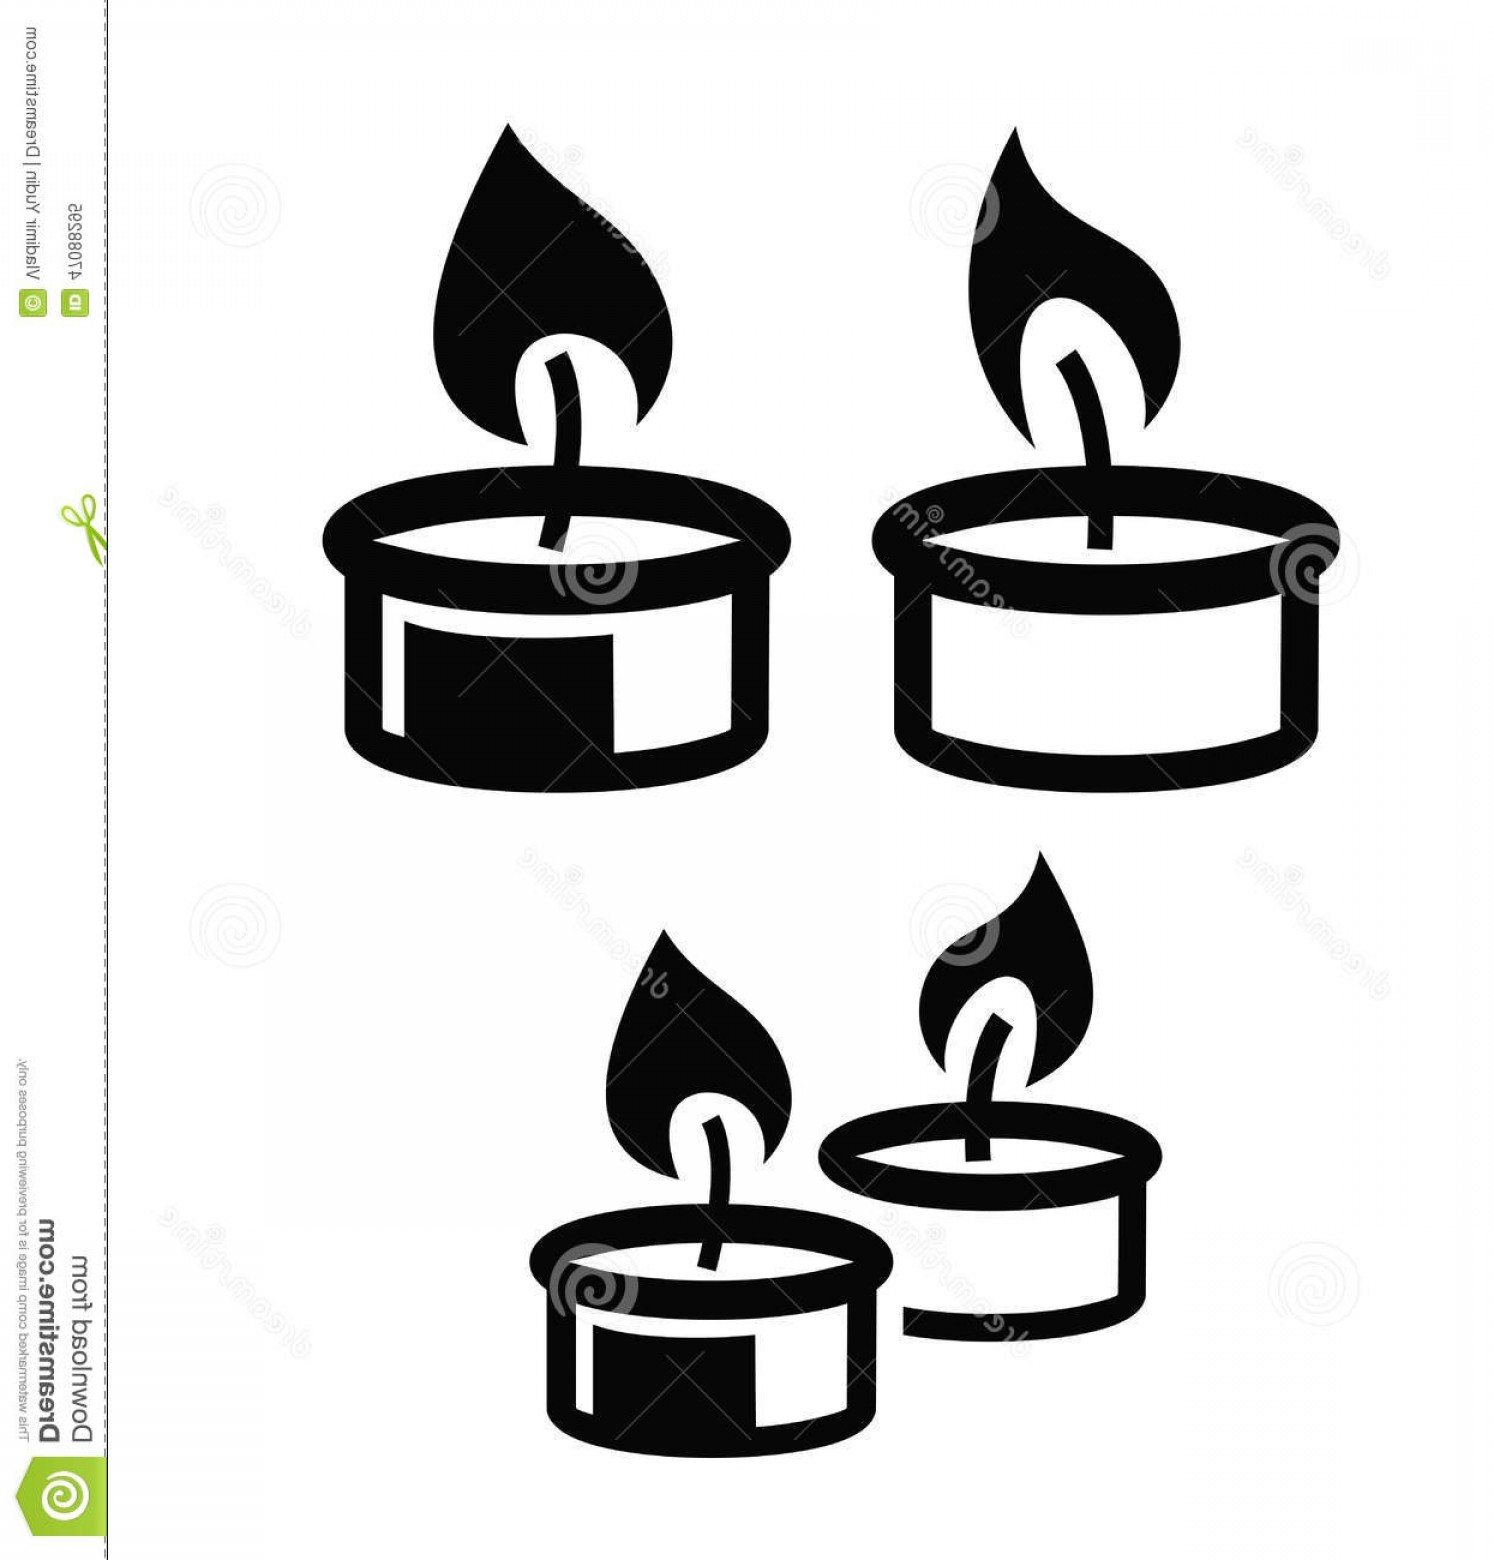 Candle Vector Black: Stock Illustration Candle Icon Vector Black White Background Image